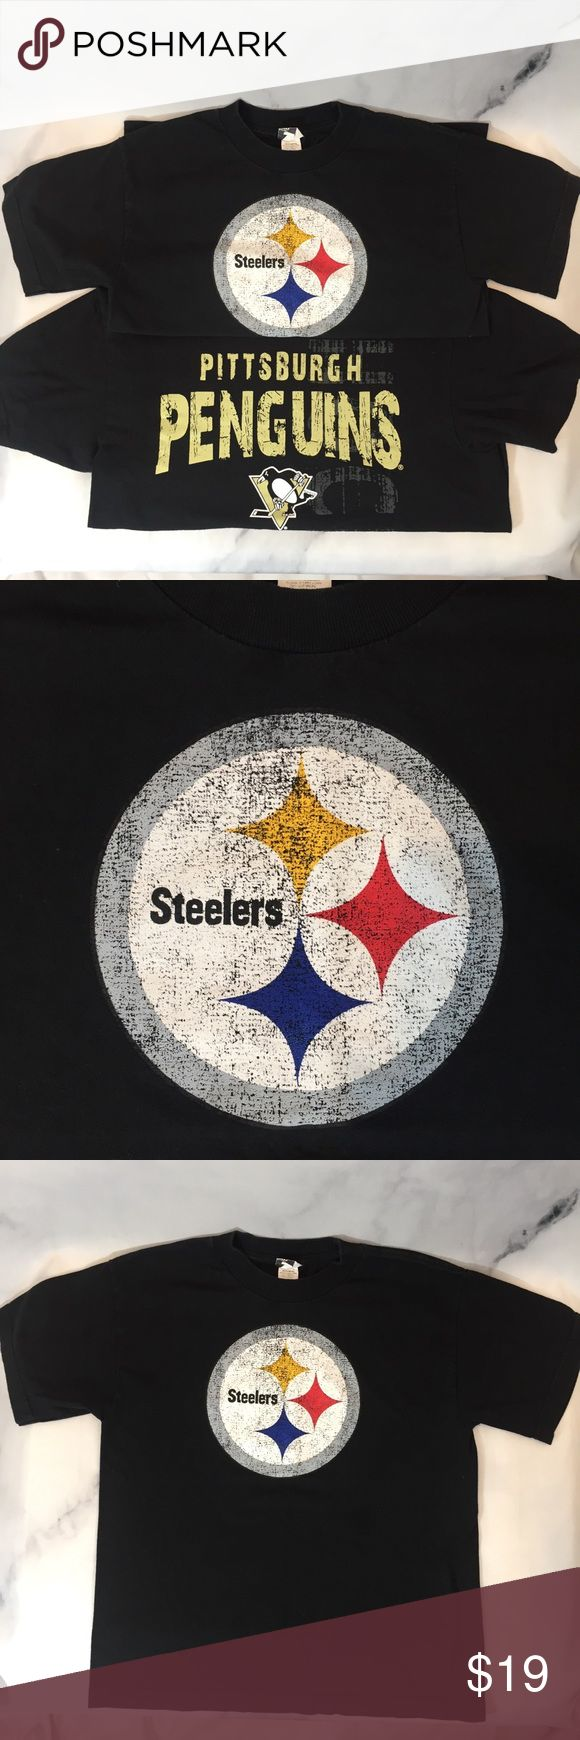 👦🏼PITTSBURGH PENGUINS STEELERS T SHIRTS BOYS M 👦🏼PITTSBURGH PENGUINS STEELERS T SHIRTS BOYS MEDIUM 👦🏼. Both gently used in great condition!  Size BOYS MEDIUM 10/12.  Cotton.  All my items are kept in a clean house that's free of smoke and pets. NCMCOLLECTIONS 🏈🏒 Shirts & Tops Tees - Short Sleeve